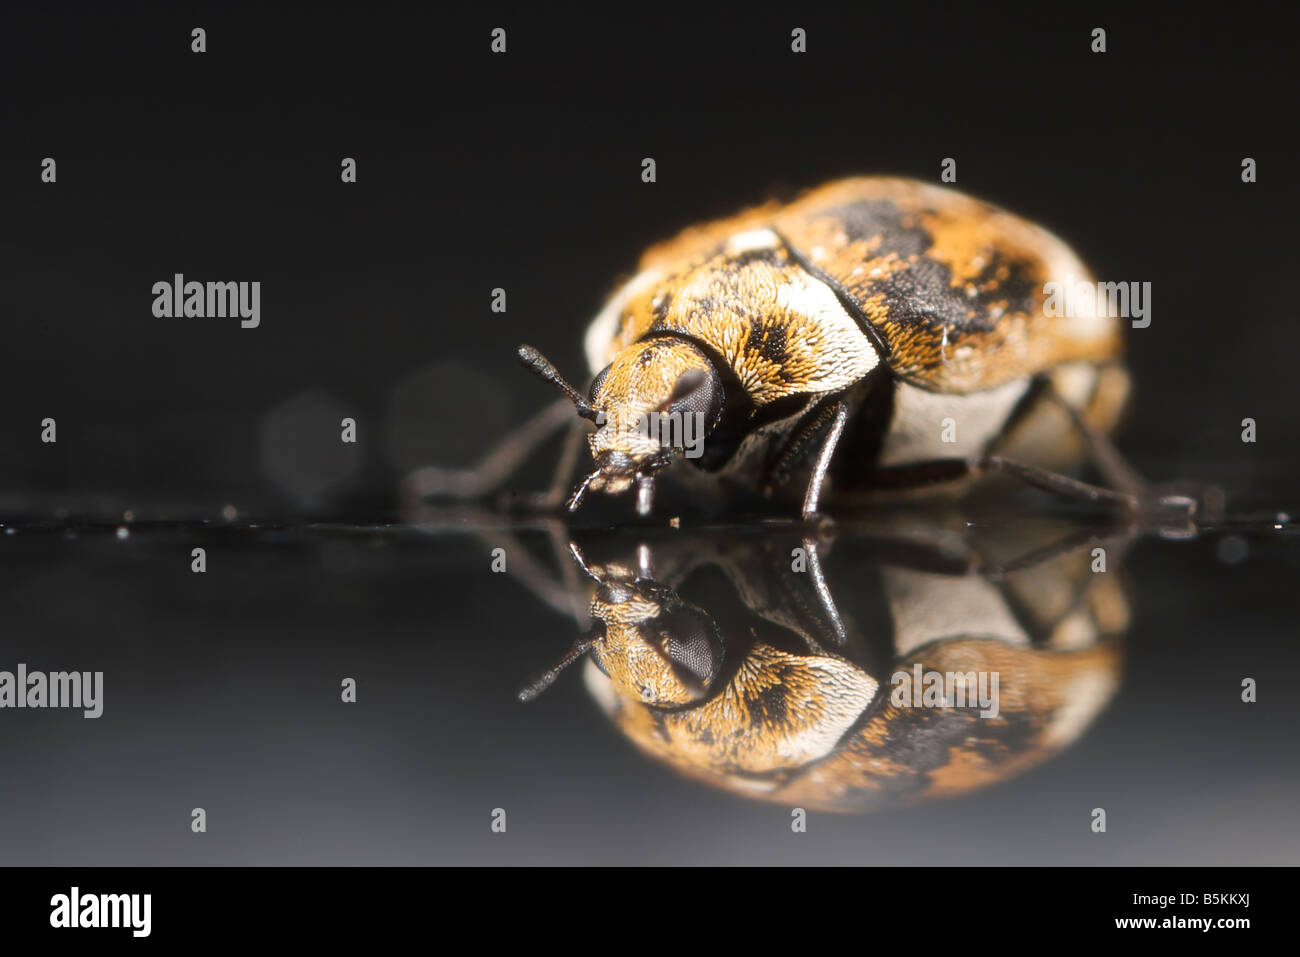 A varied carpet beetle sits on a reflective granite surface.  Photo is approximately 4x life size. Stock Photo